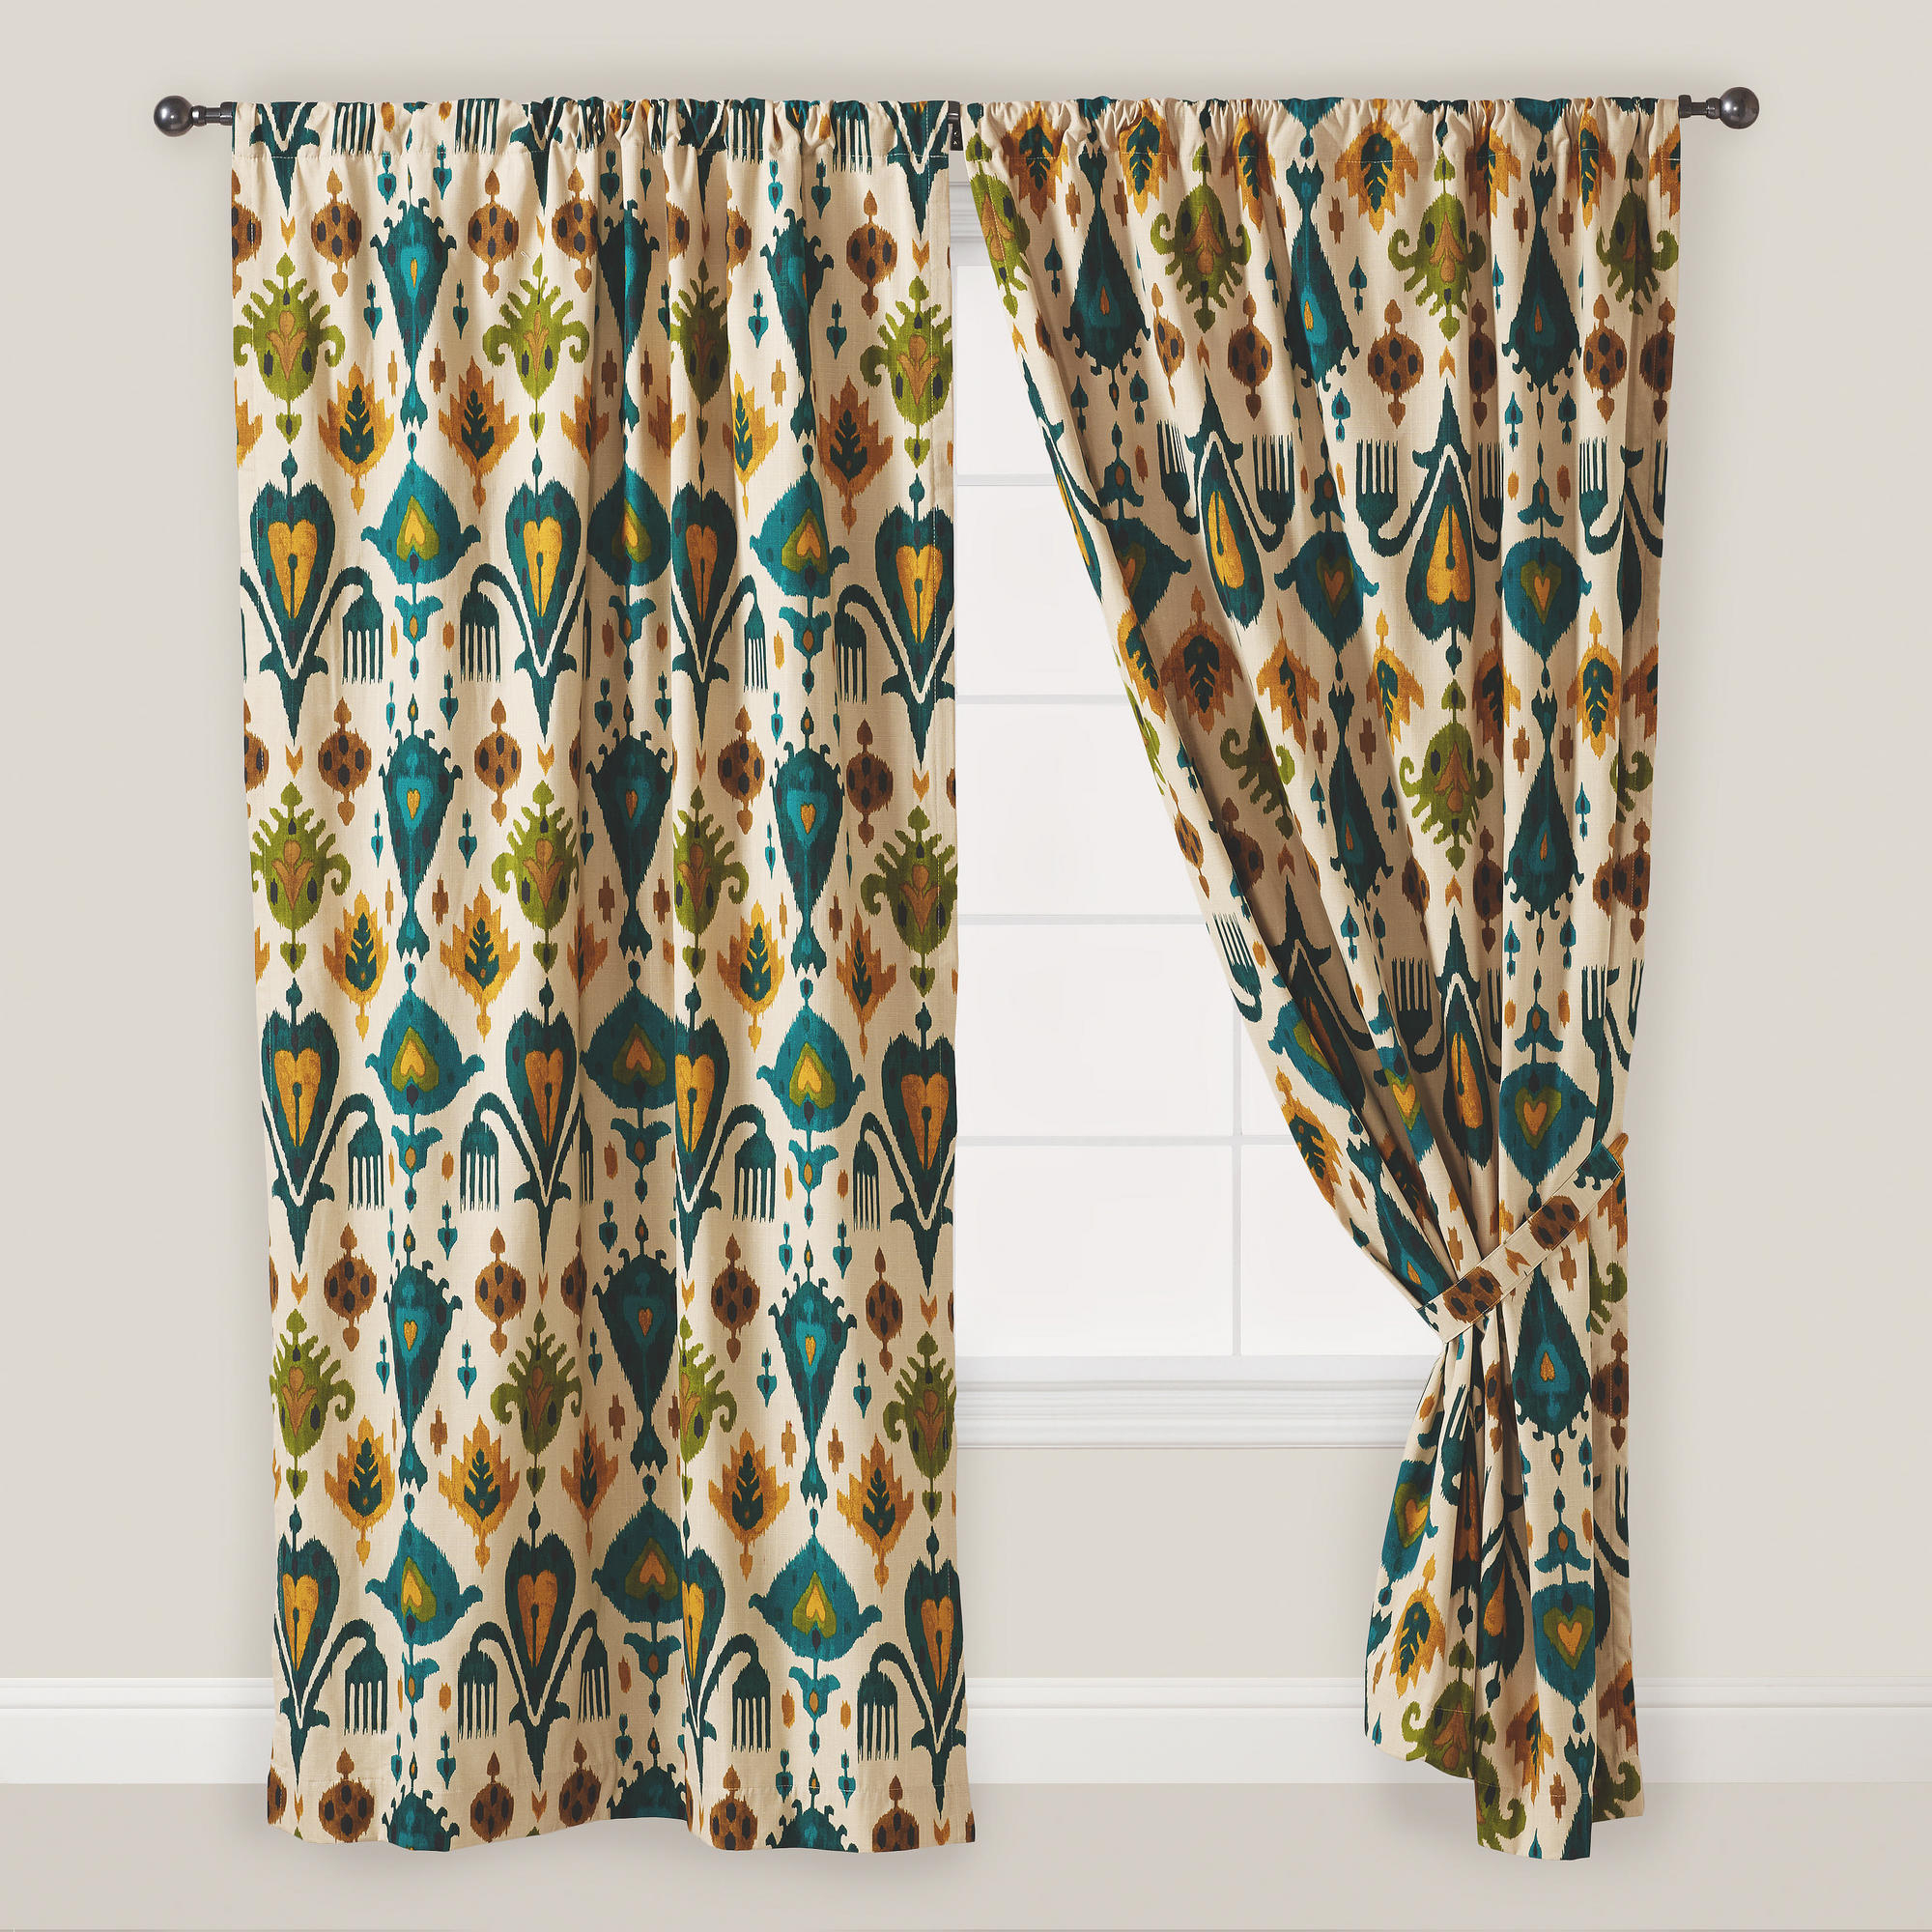 Ikat Blue Printed Cotton Curtain Panels Intended For Well Known Home Decor (View 16 of 20)